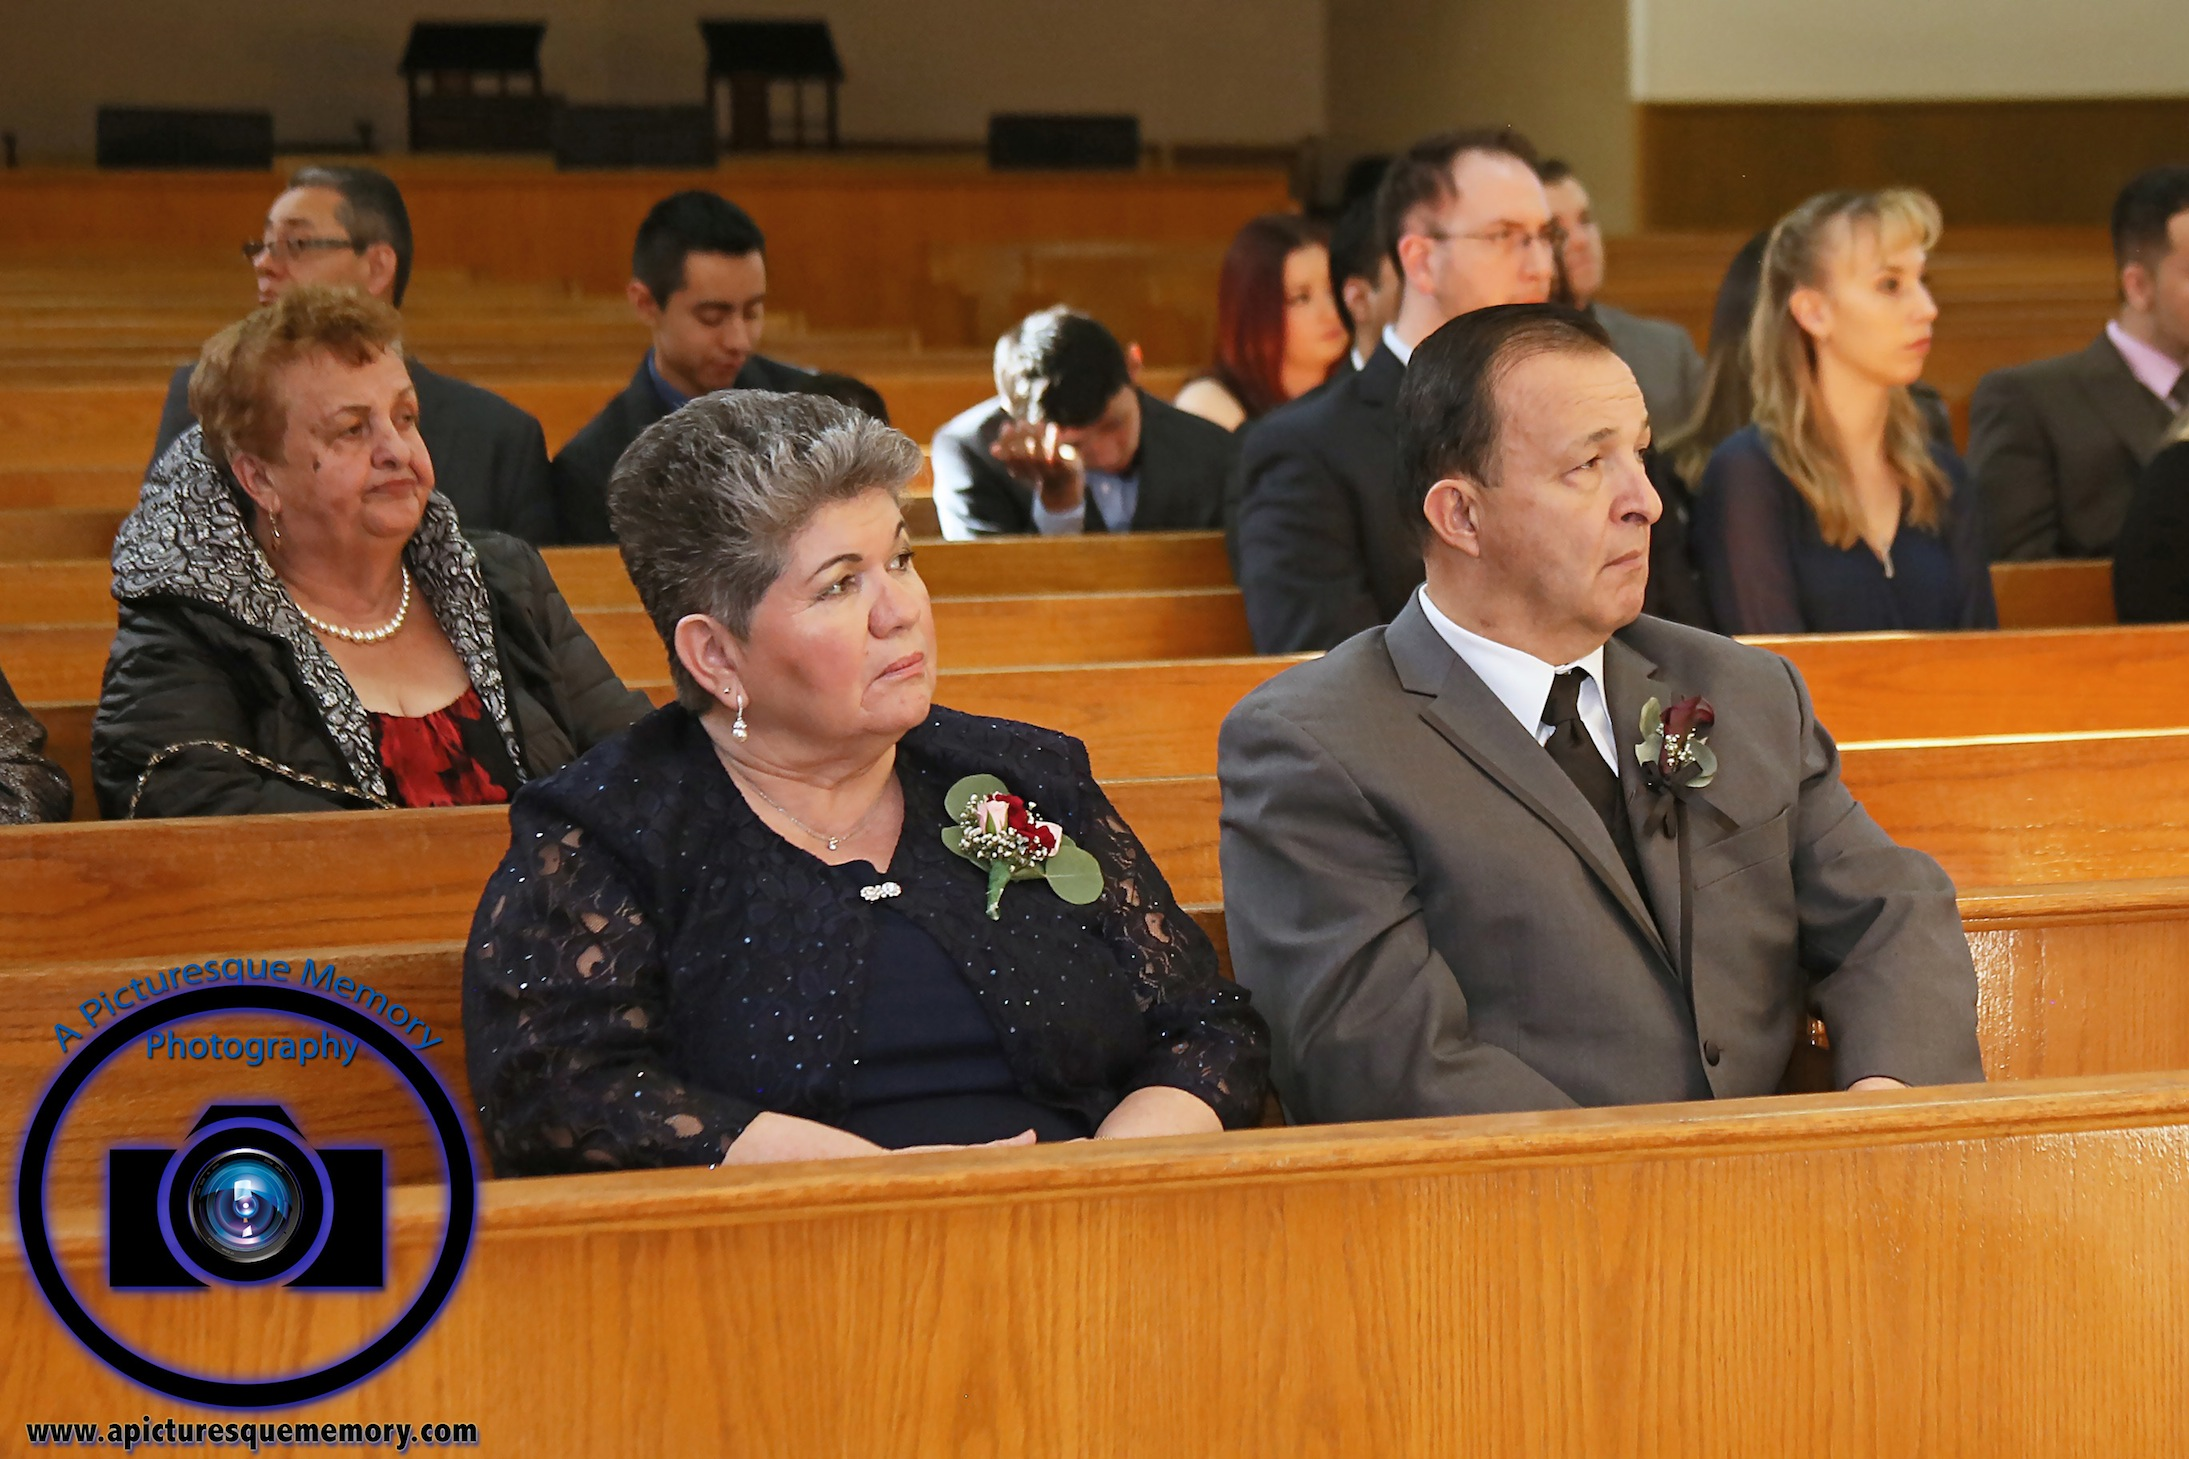 #njwedding, #njweddingphotography, #newbrunswickweddingphotographer#weddingphotos, #apicturesquememoryphotography, #ourladyofmountcarmelweddingphotographer, #weddingceremony, #parentsofthebride